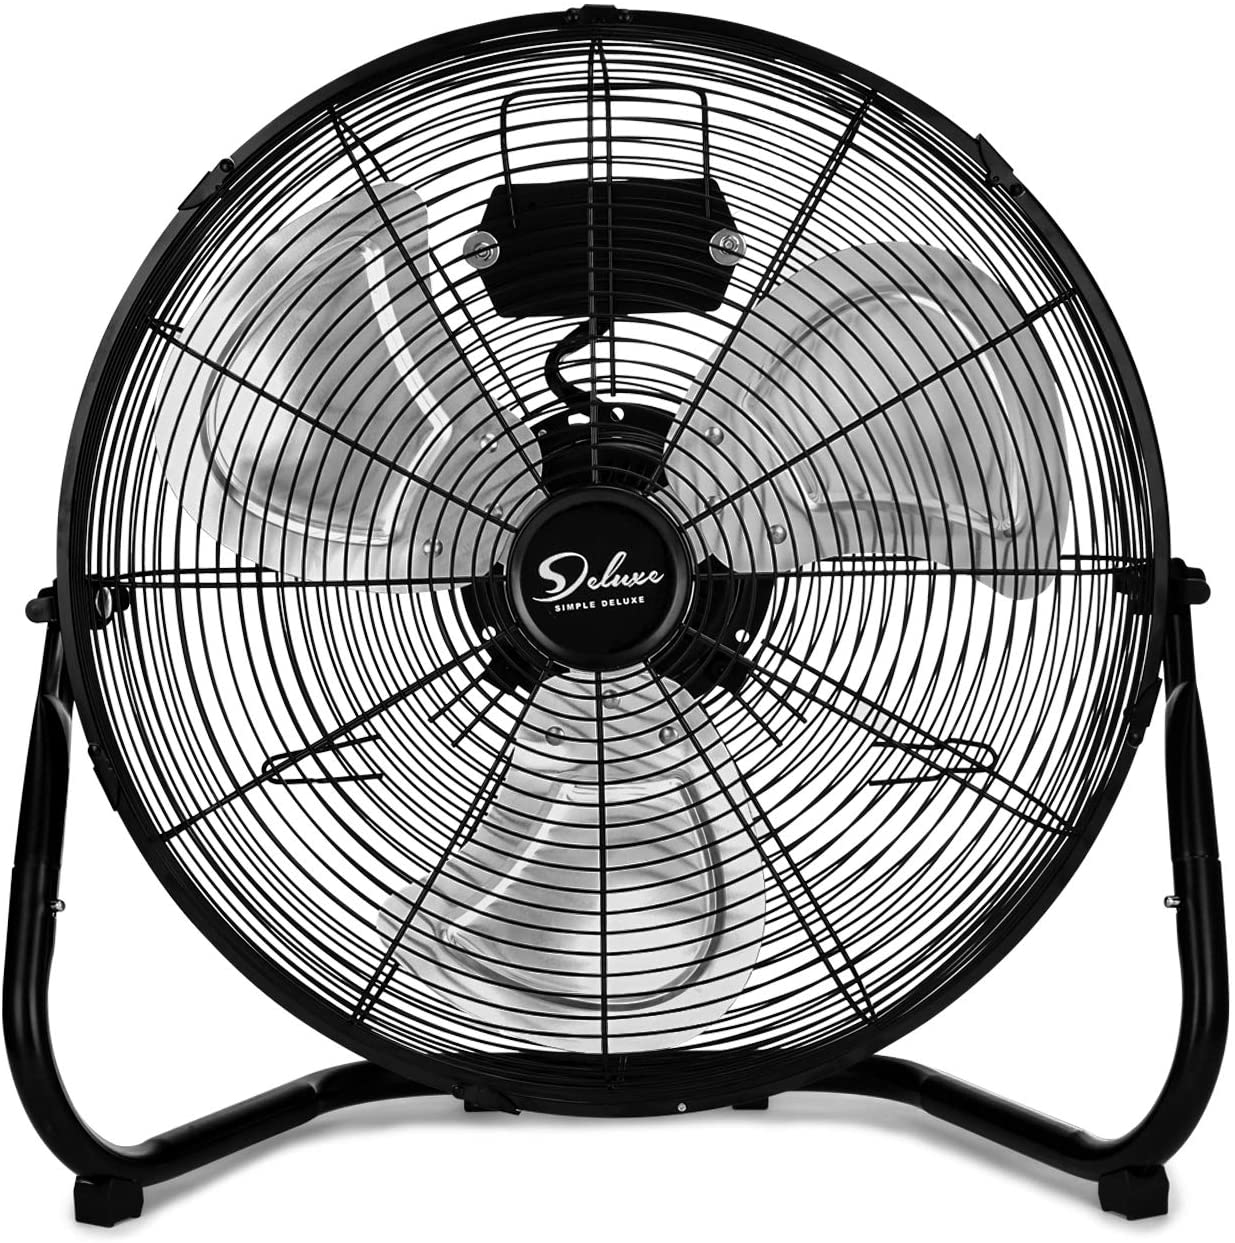 Simple Deluxe 20 Inch 3-Speed High Velocity Heavy Duty Metal Industrial Floor Fans Oscillating Quiet for Home, Commercial, Residential, and Greenhouse Use, Outdoor/Indoor, Black